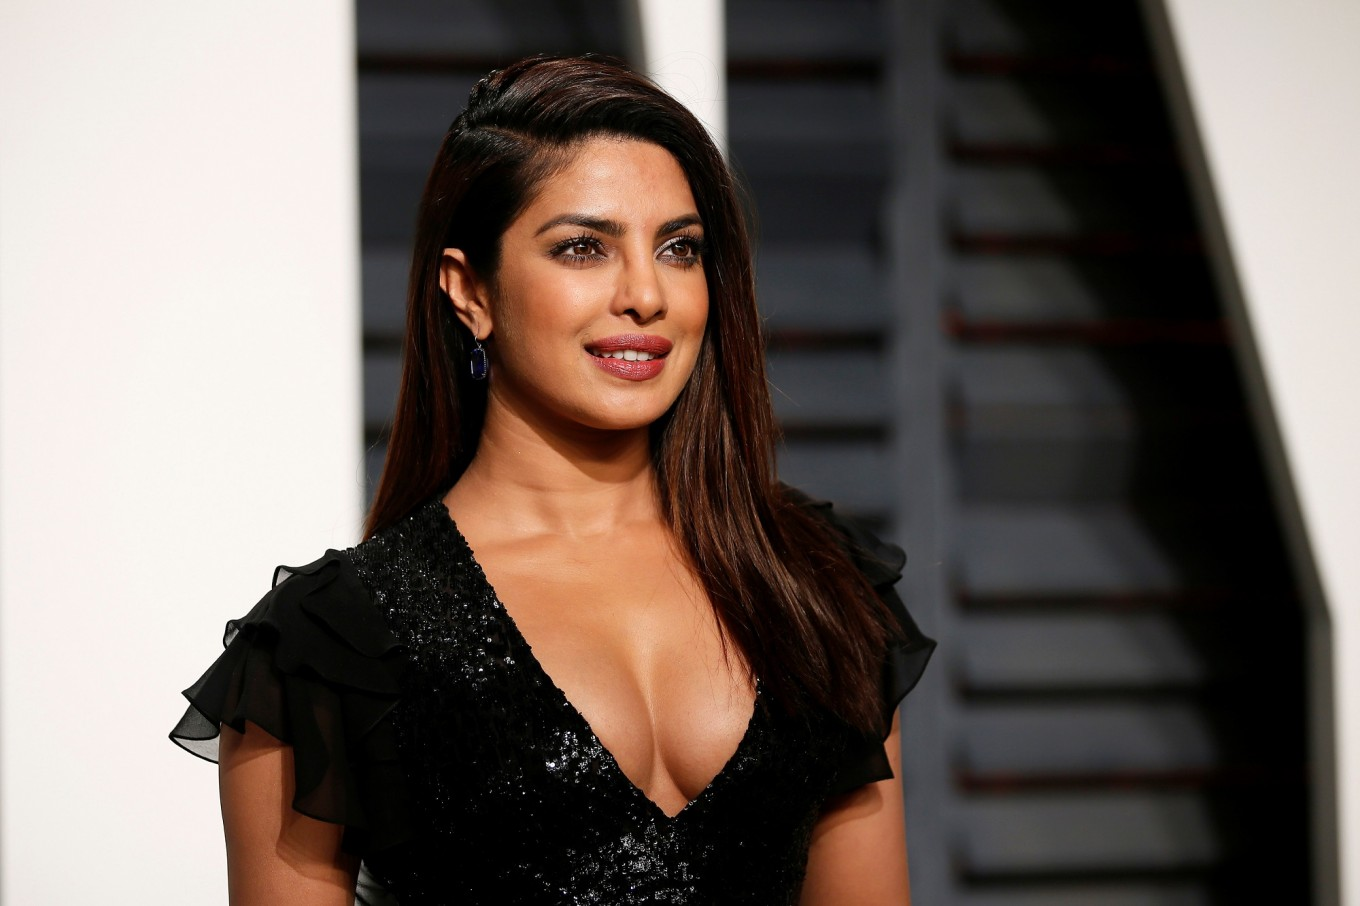 Bollywood Actress Priyanka Chopra Hot